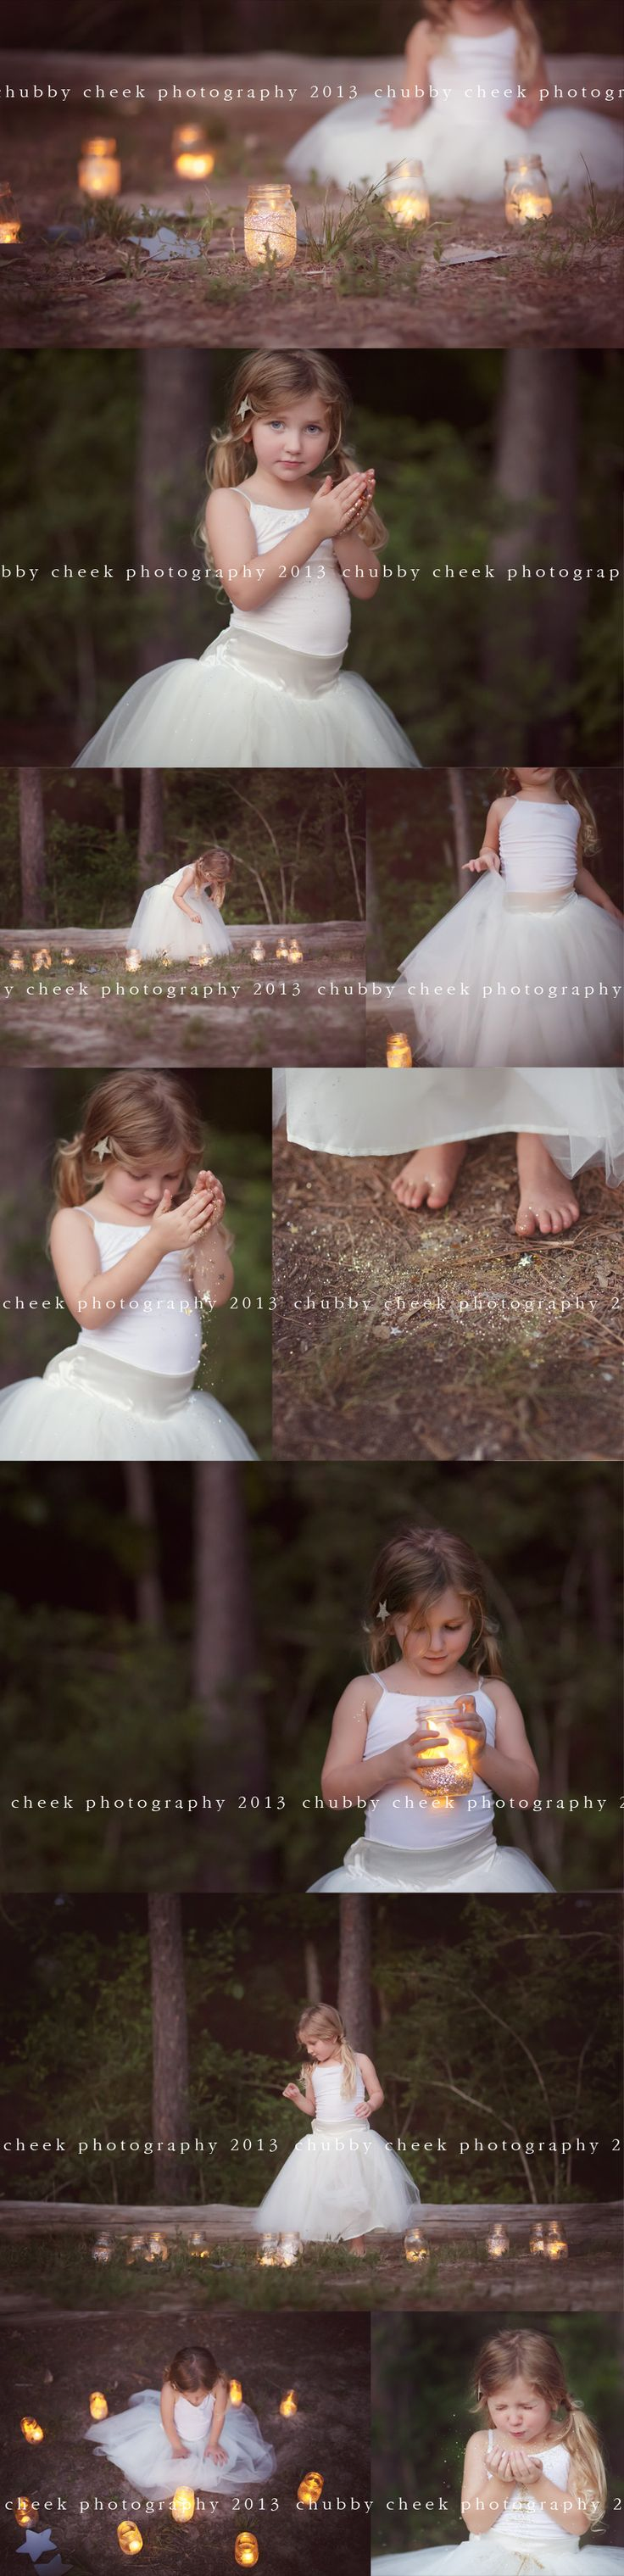 Chubby Cheek Photography Houston, TX Natural Light Photographer » Houston Baby, Child, and Family Photographer #clickaway #clickinmoms